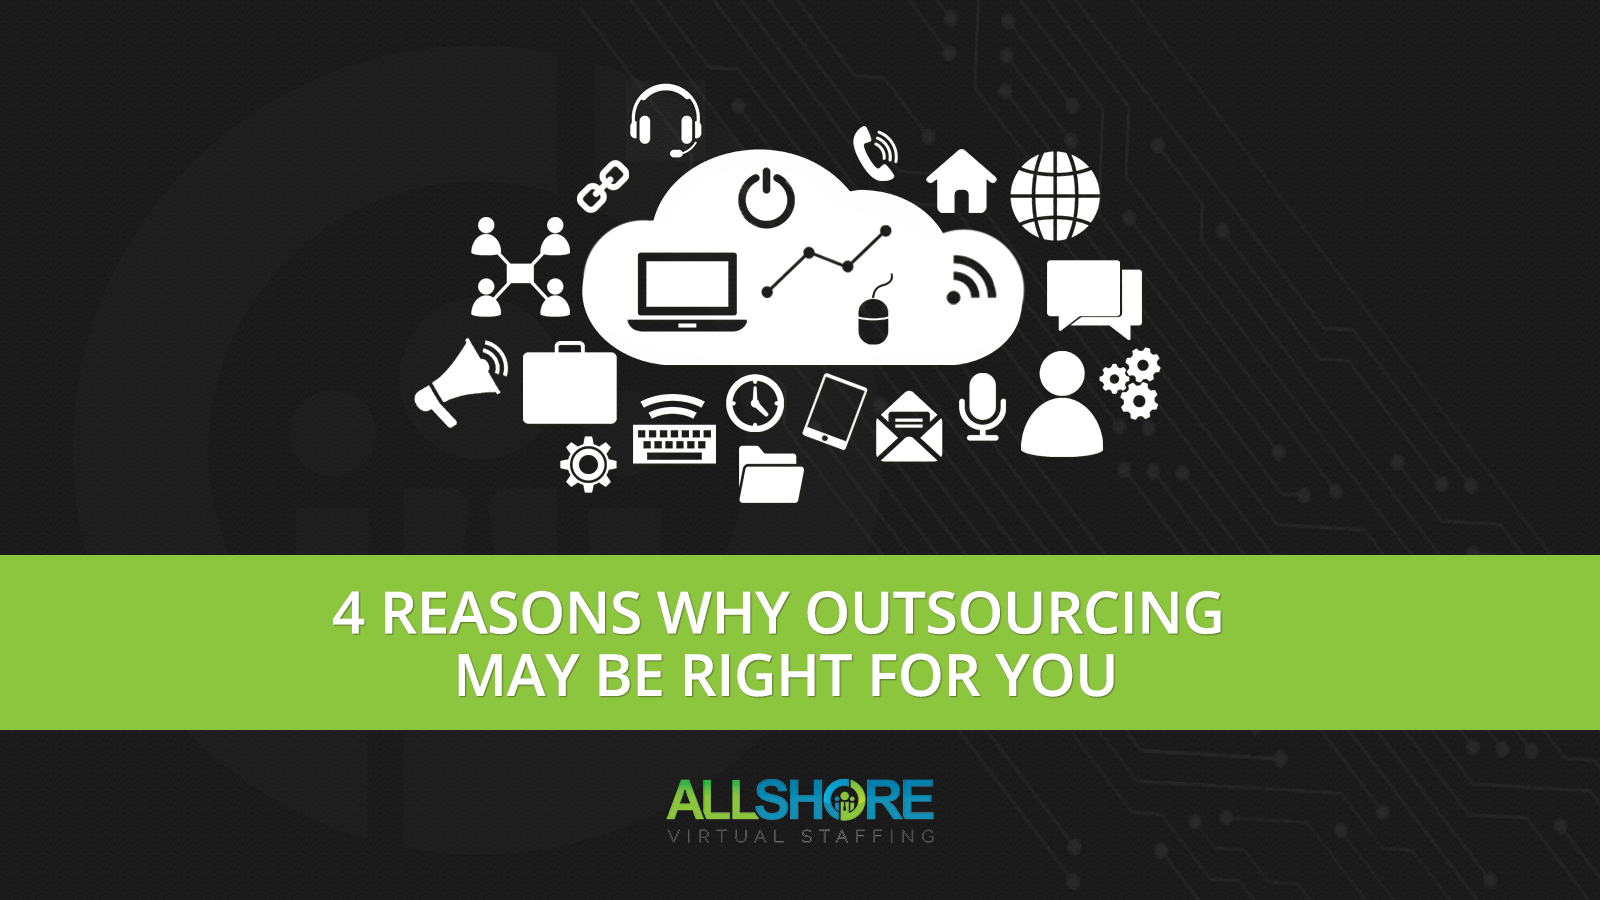 4 Reasons Why Outsourcing May Be Right for You